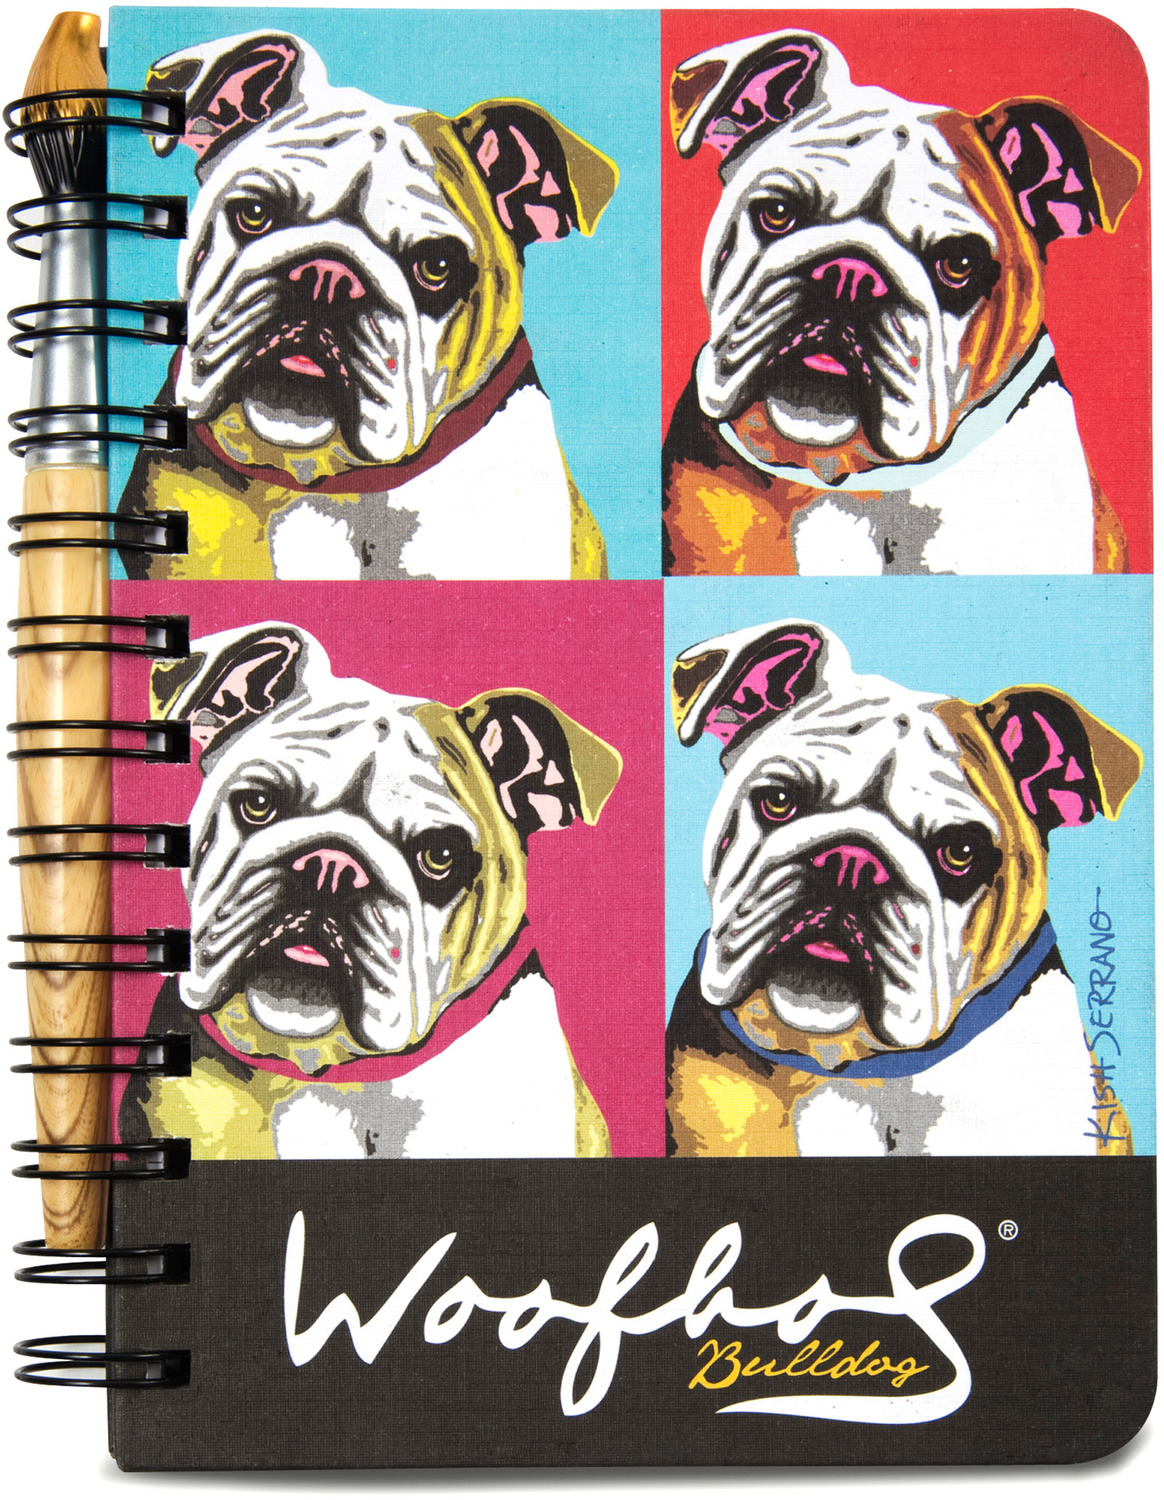 "Bulldog Woofhol by Paw Palettes - Bulldog Woofhol - 5"" x 7"" Journal & Pen Set"